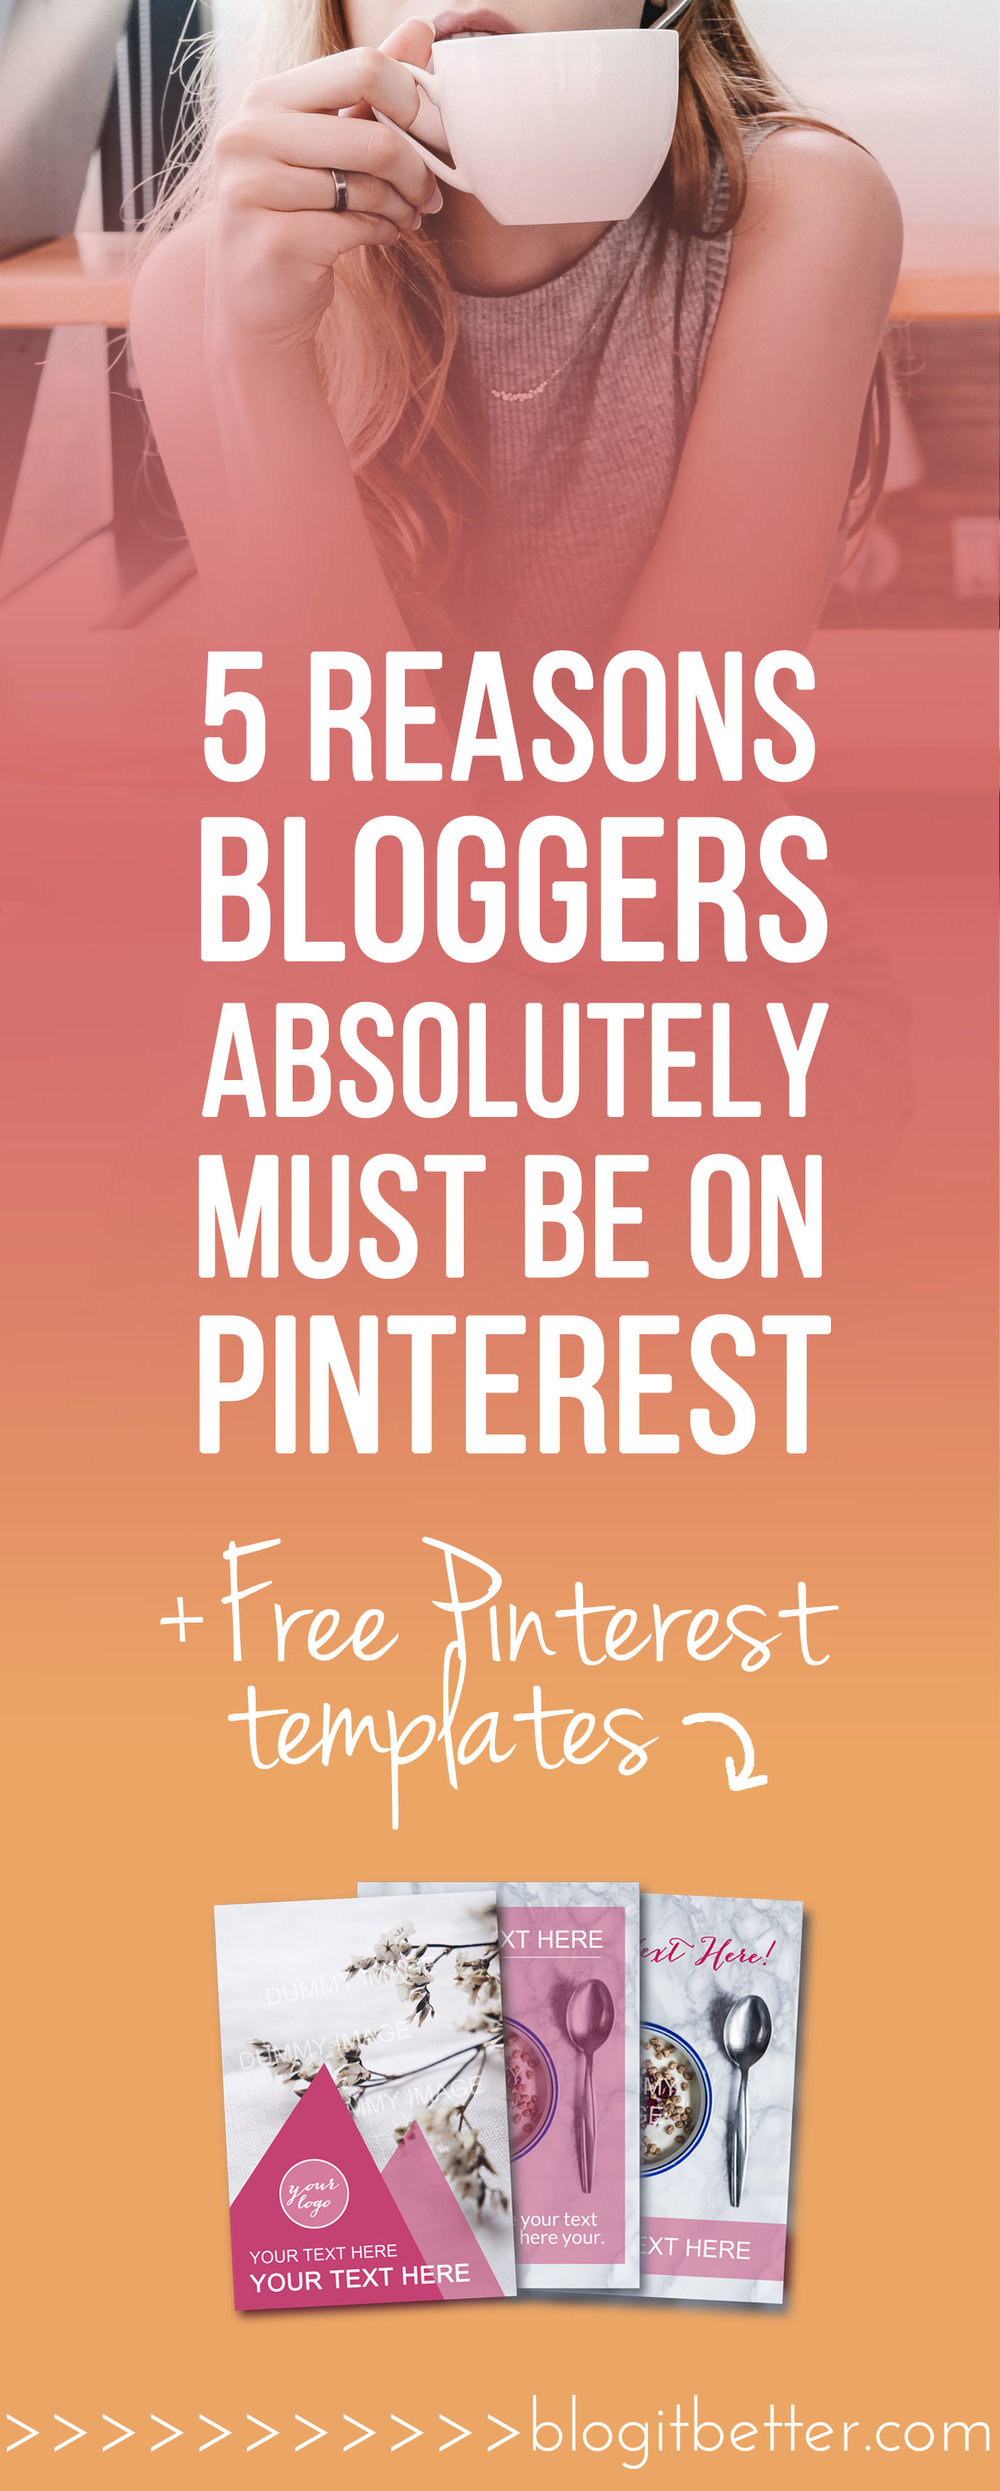 >> FREE Pinterest Templates<< 5 Reasons Why Bloggers Absolutely Must Master Pinterest! Why use Pinterest as a blogger - Benefits of using Pinterest #pinterest #pinteresttips #pinterestforbusiness #pinterestforbloggers #socialmediatips #howtousepinterest #pinterestseo #pinteresttraffic #pinitbutton #wordpresstips #squarespacetips #blogitbetter #bloggingtips